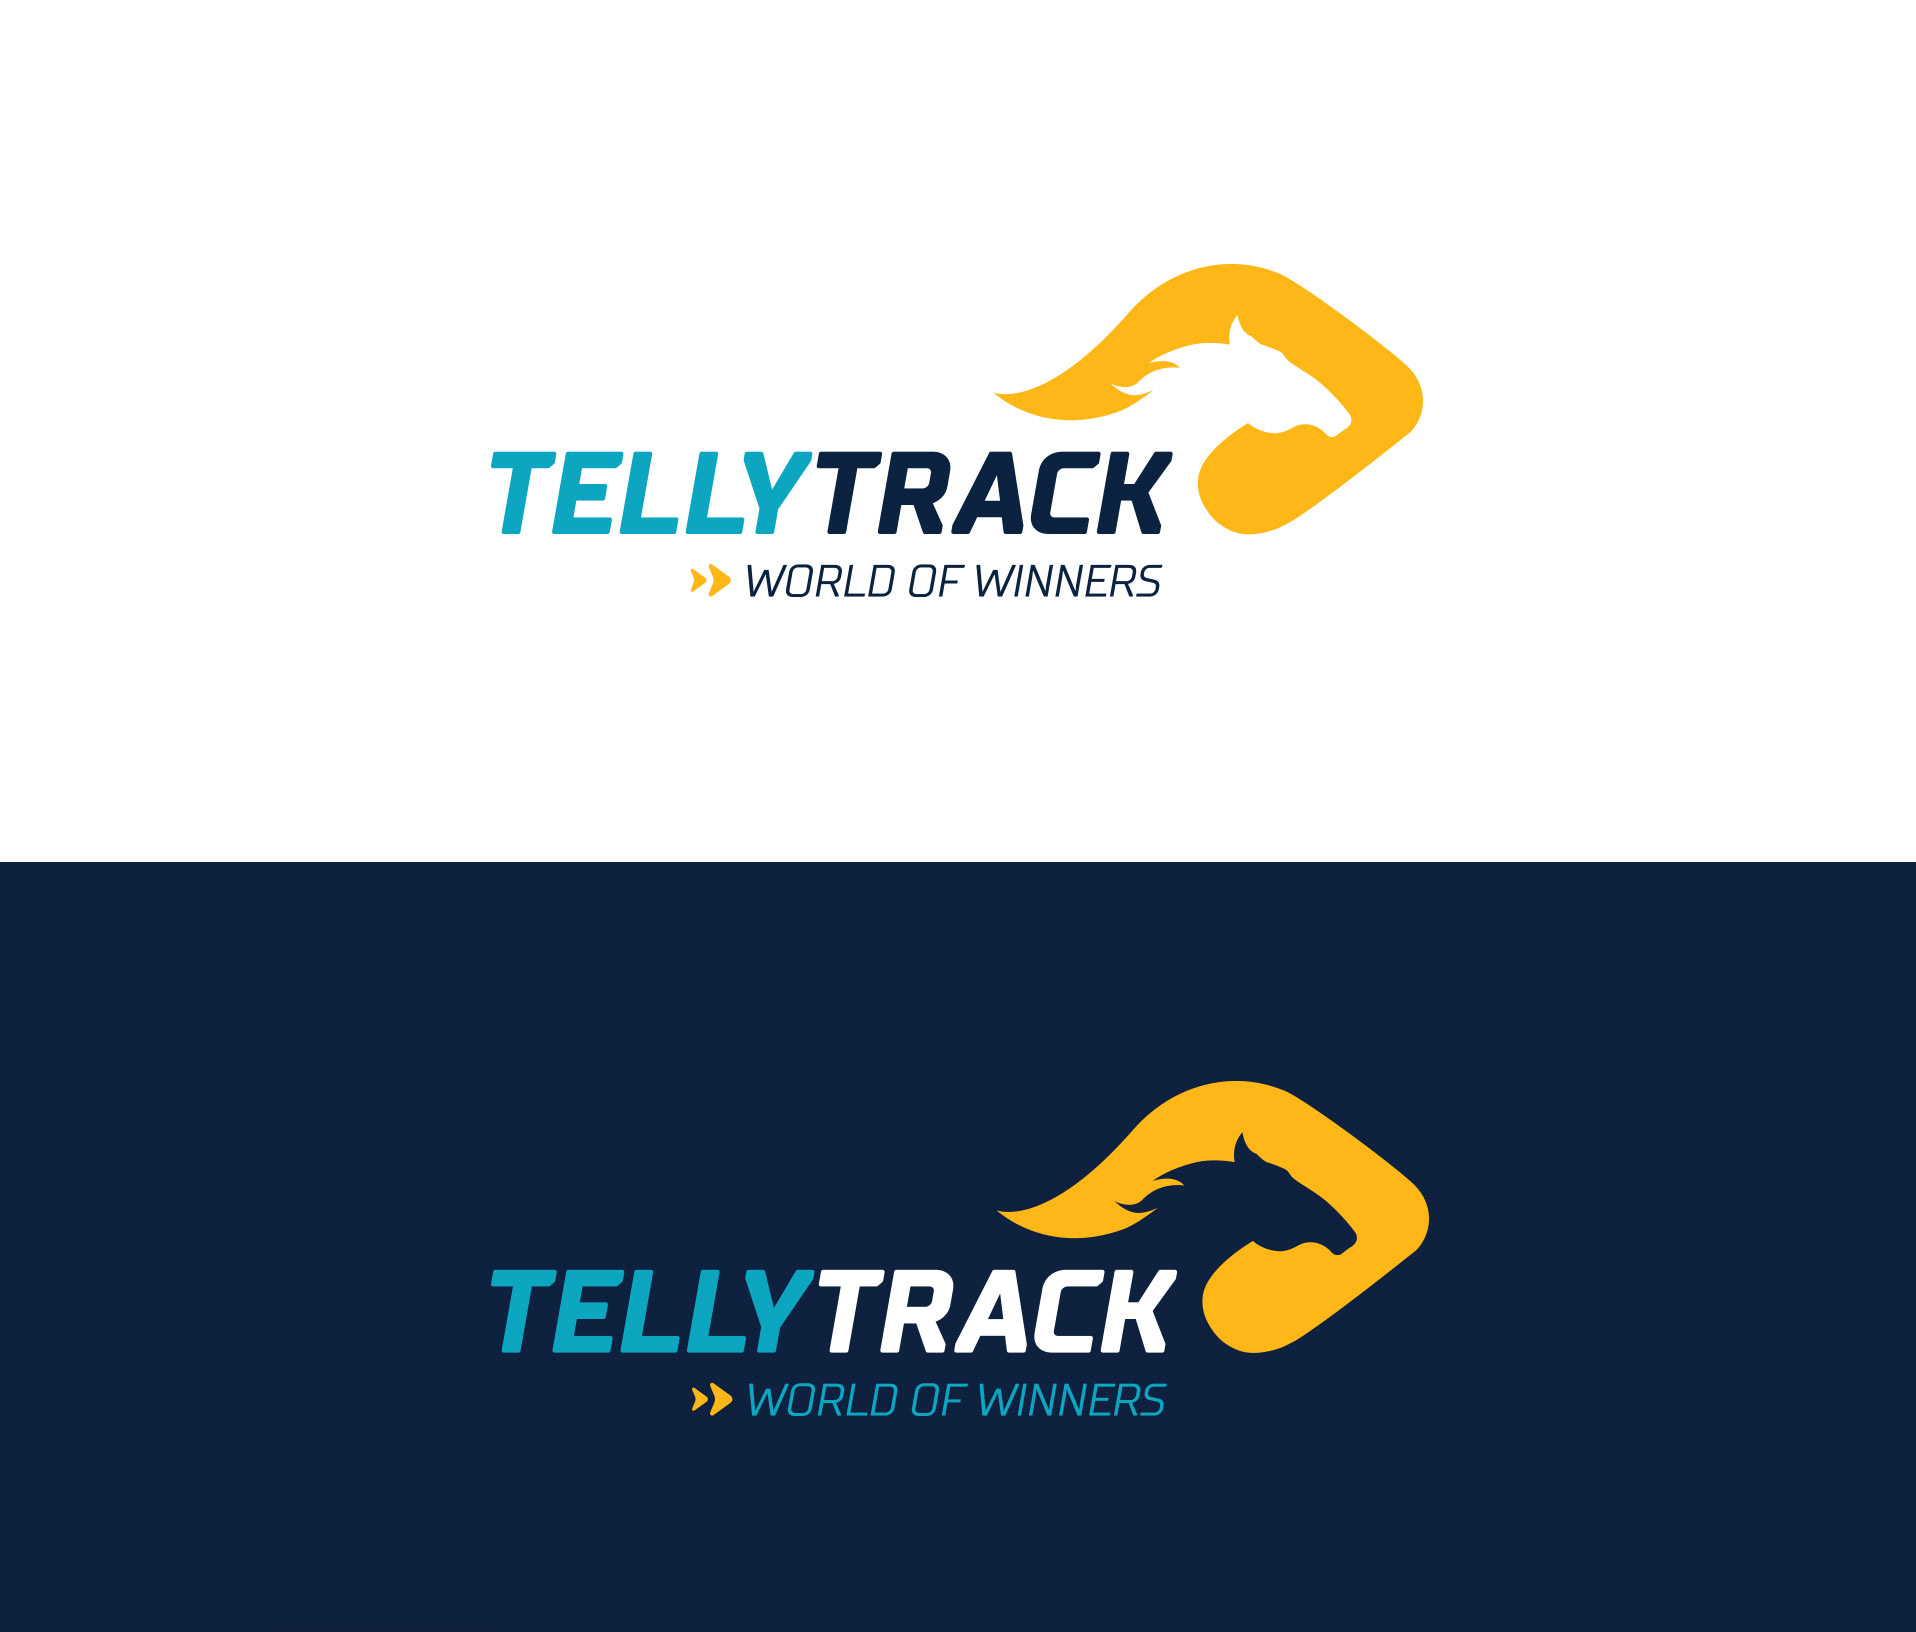 Telly track betting prop bets on betdsi